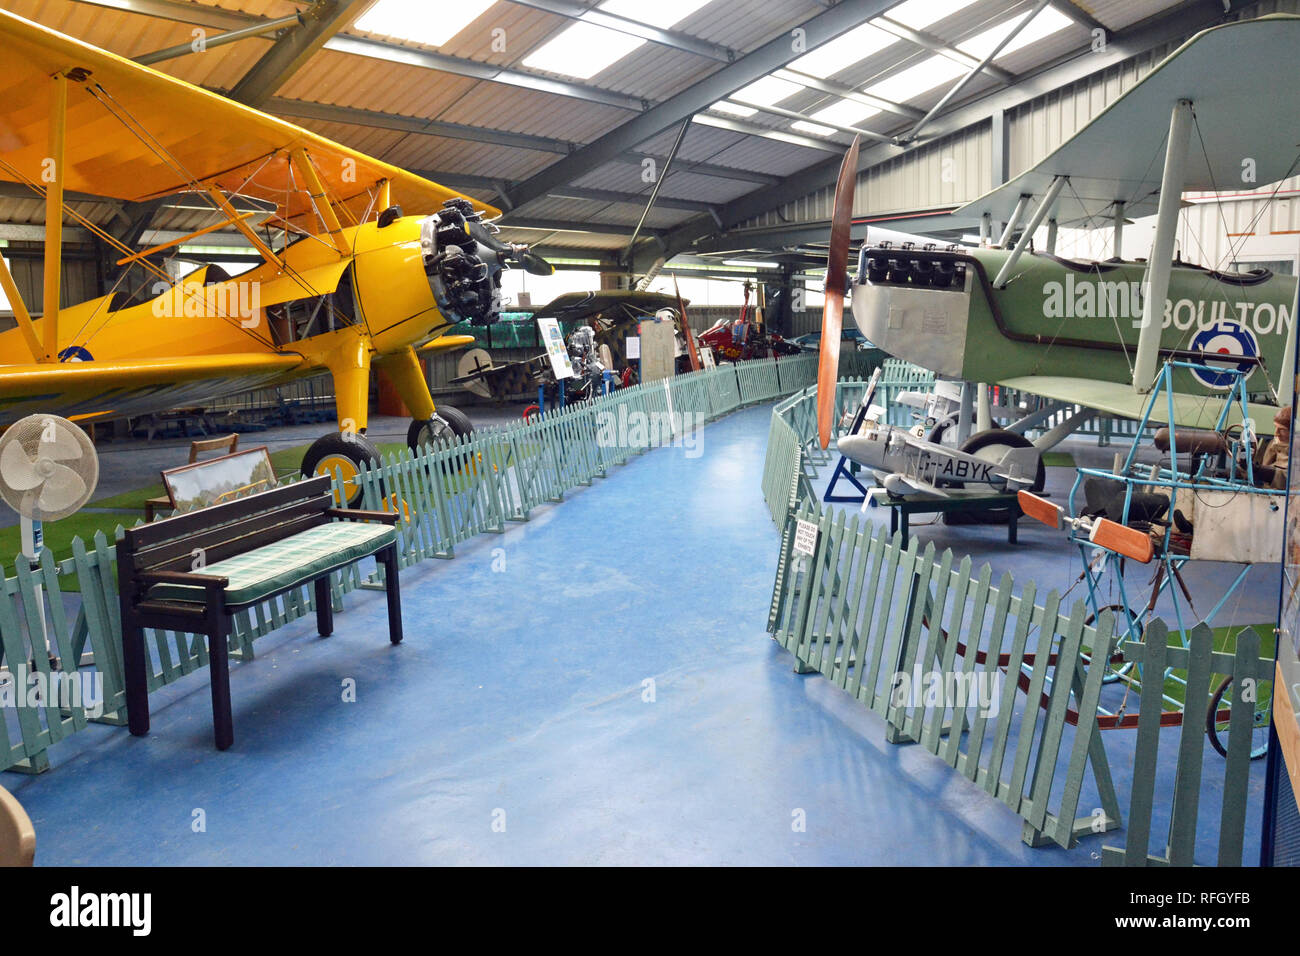 Boeing Stearman PT-27 Kaydet, and a Boulton and Paul P.6 at the Norfolk and Suffolk Aviation Museum, Flixton, Suffolk, UK - Stock Image